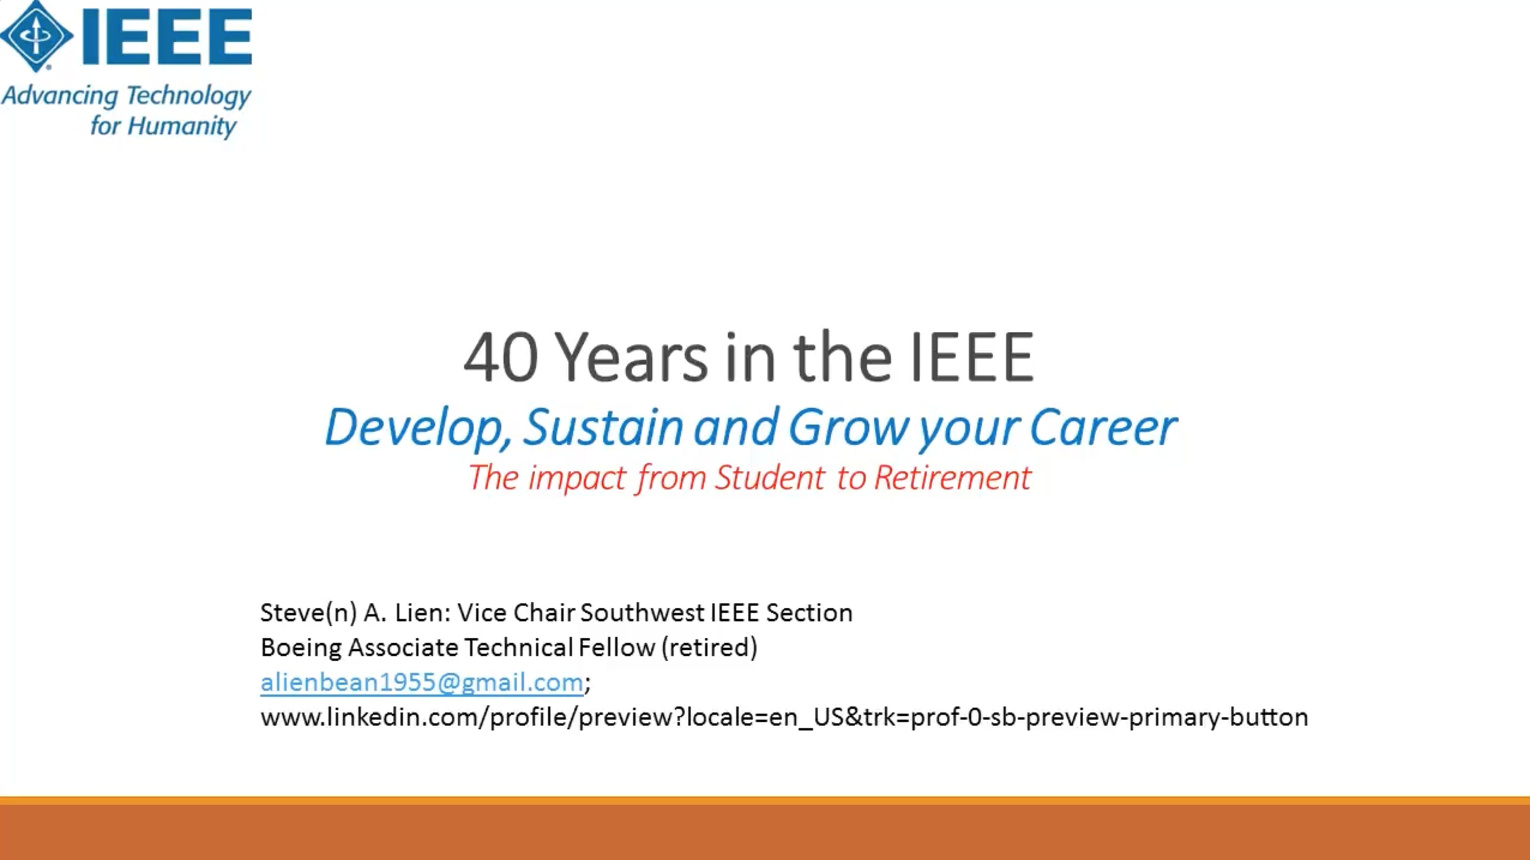 40 Years in the IEEE: Develop, Sustain and Grow Your Career (Webinar) - Steve A. Lien